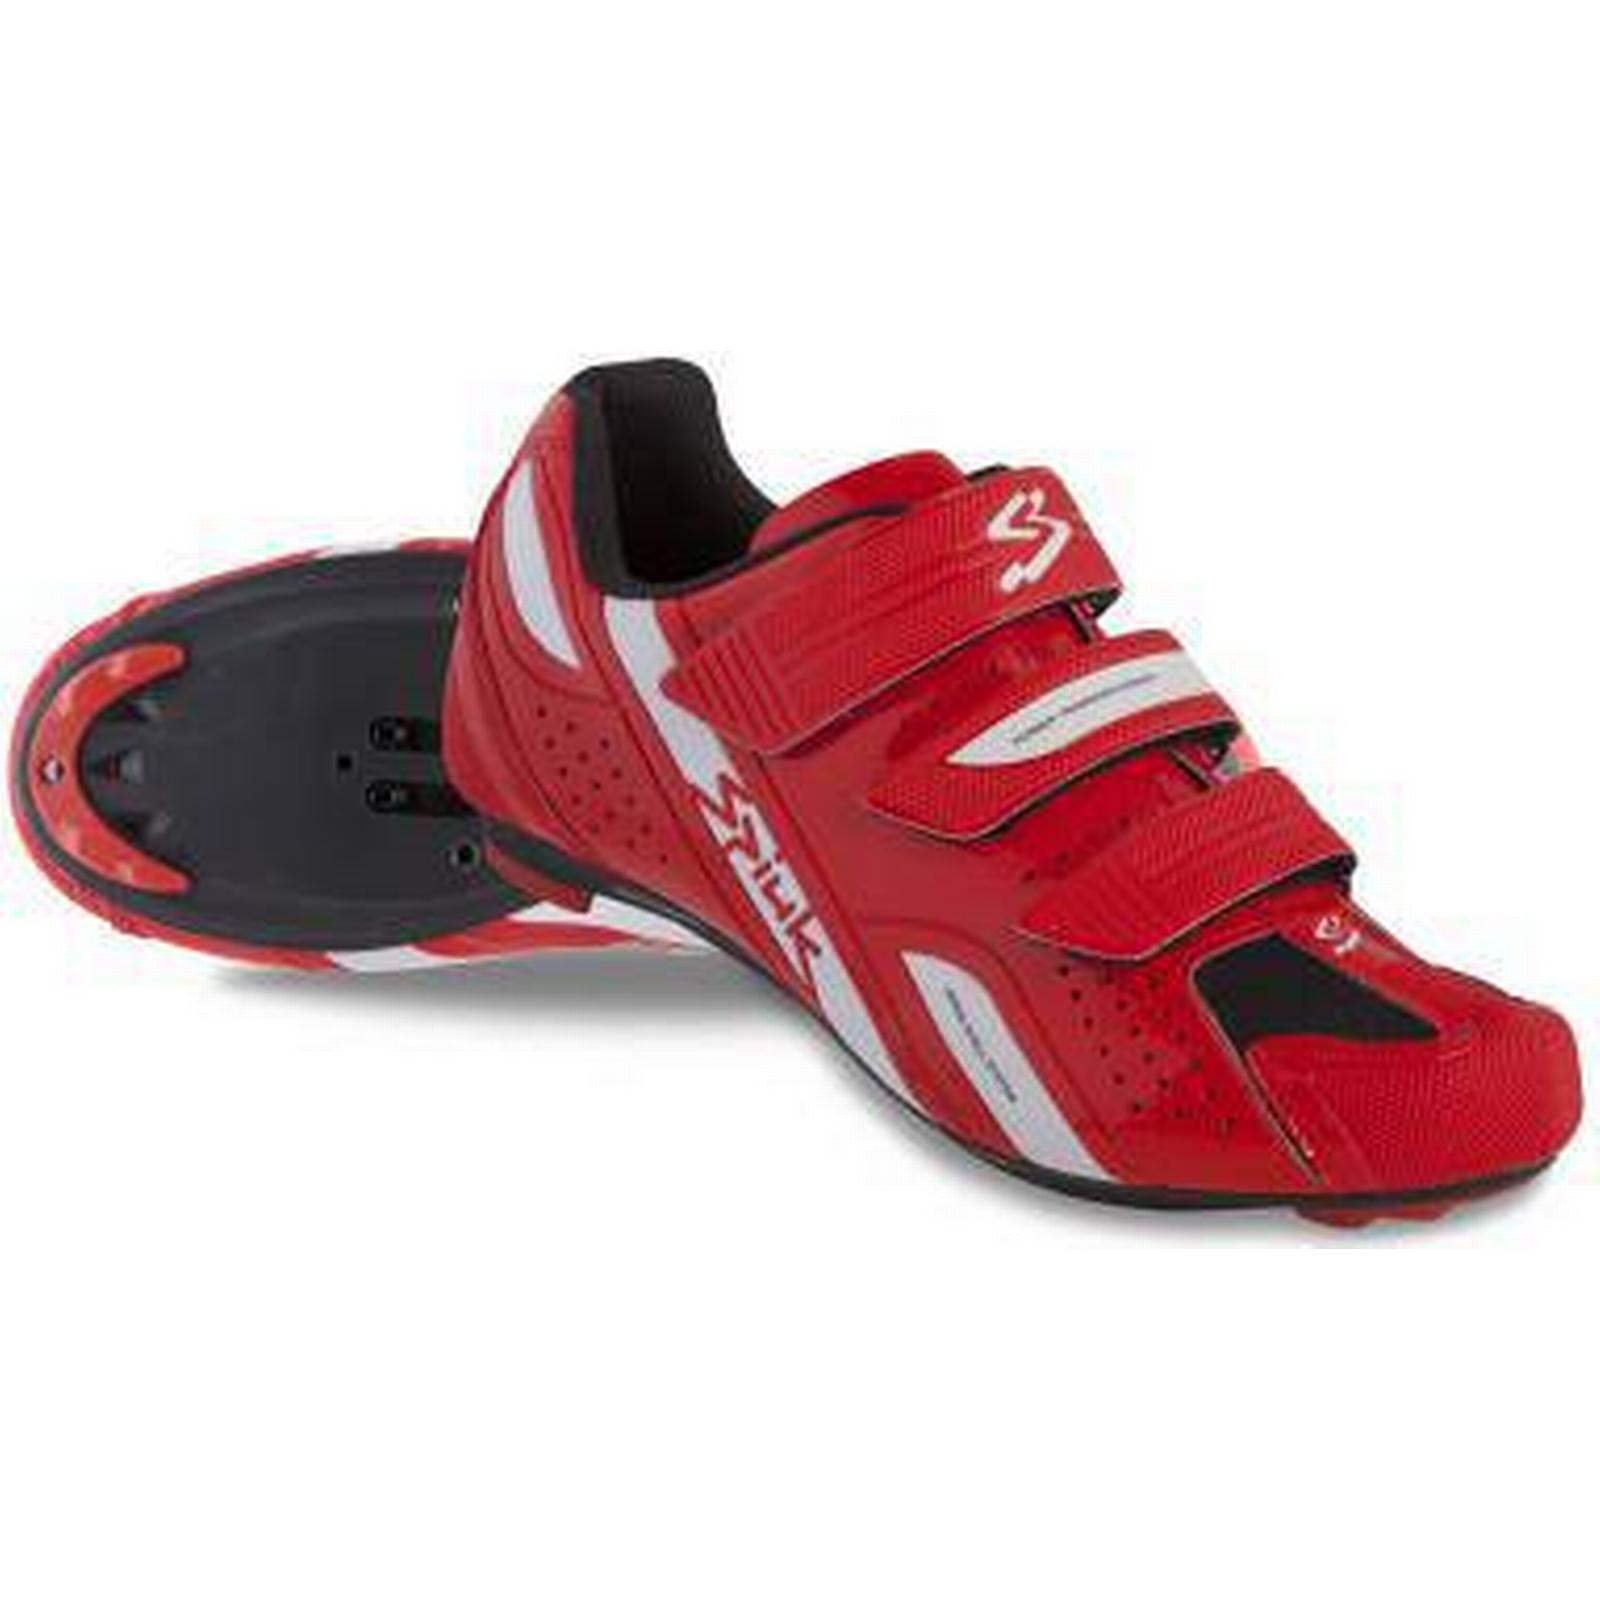 Spiuk Rodda Road Shoes - Red / / Red White / EU46 a377db